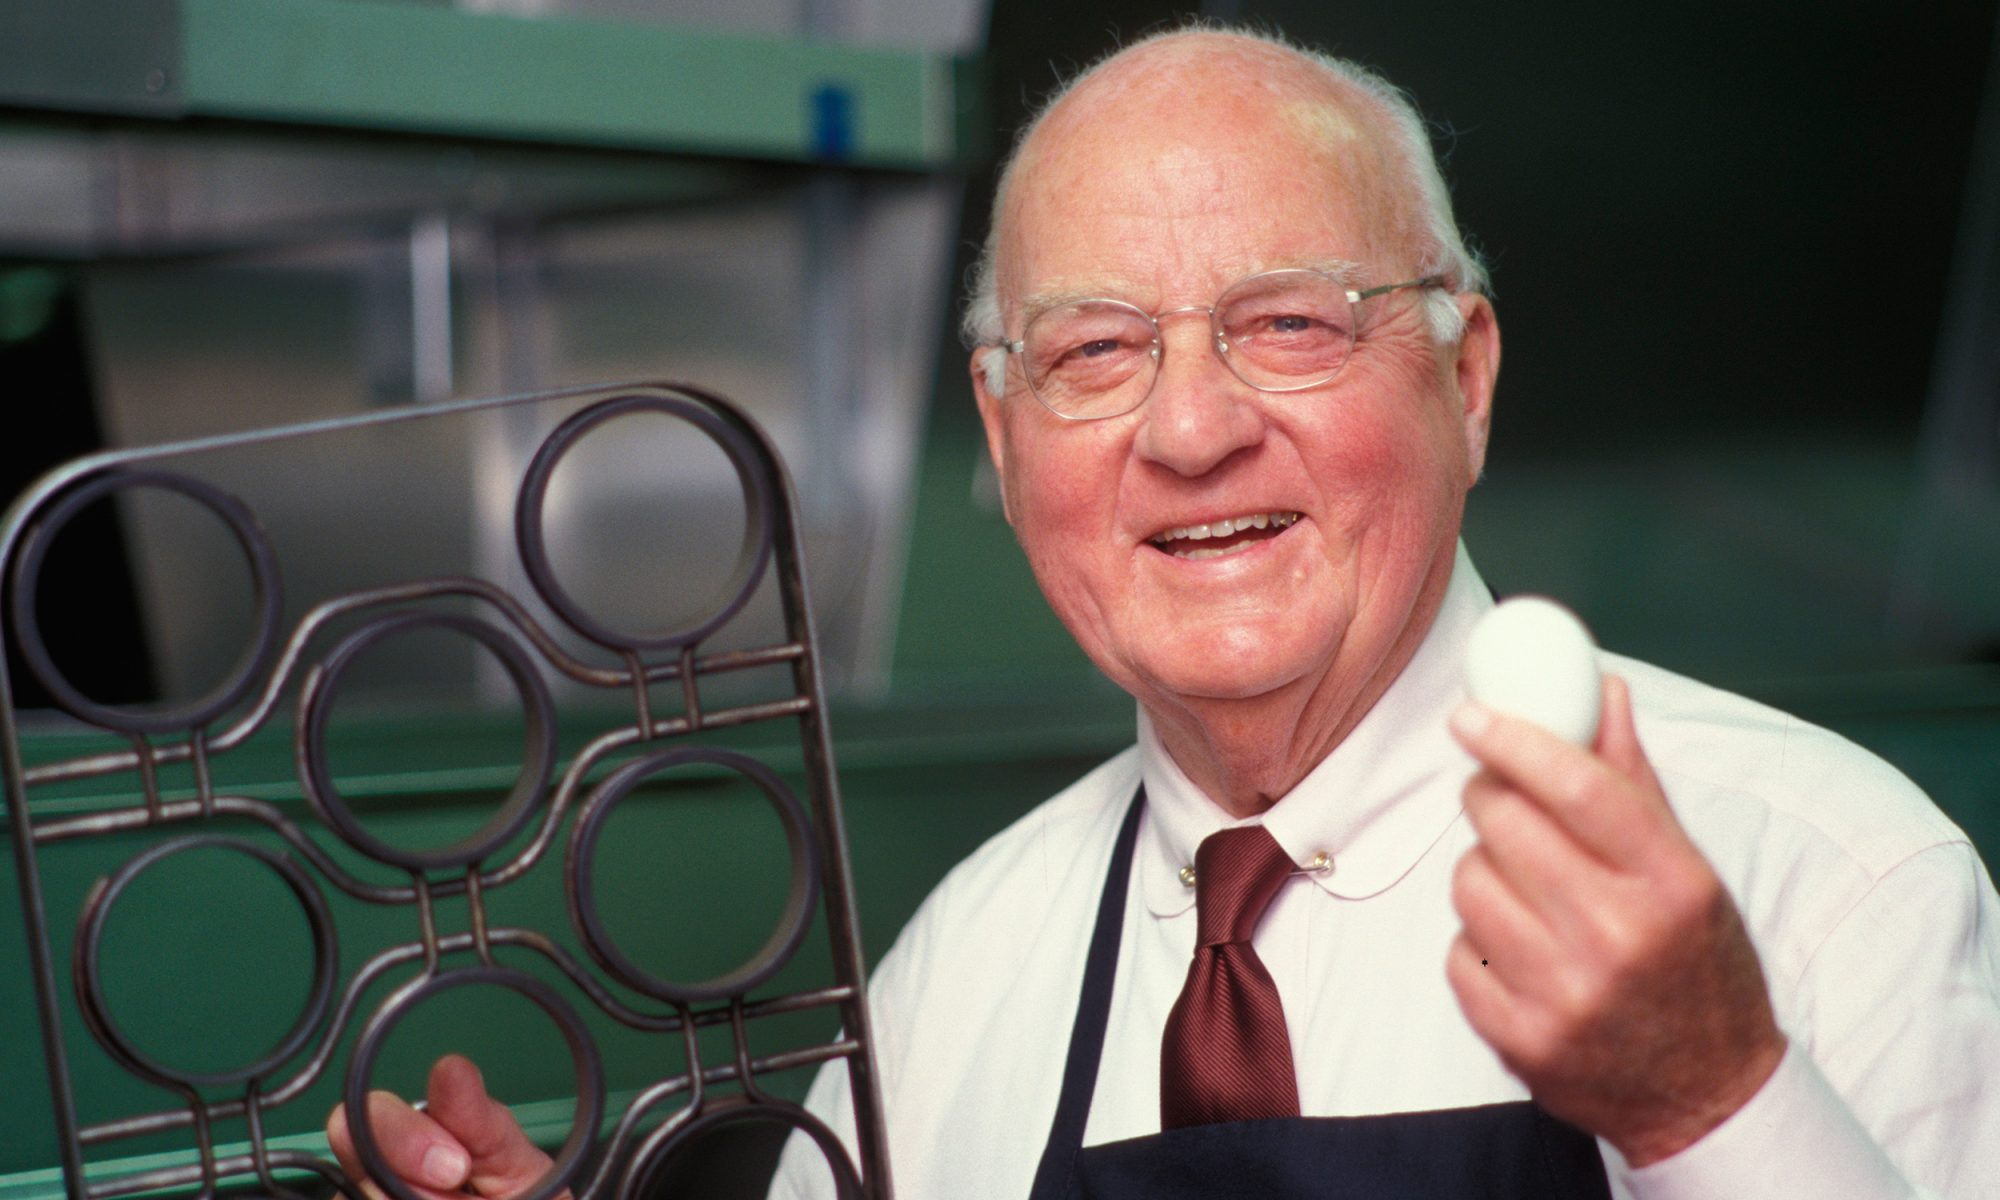 EC: Today's the Day to Celebrate the Inventor of the Egg McMuffin